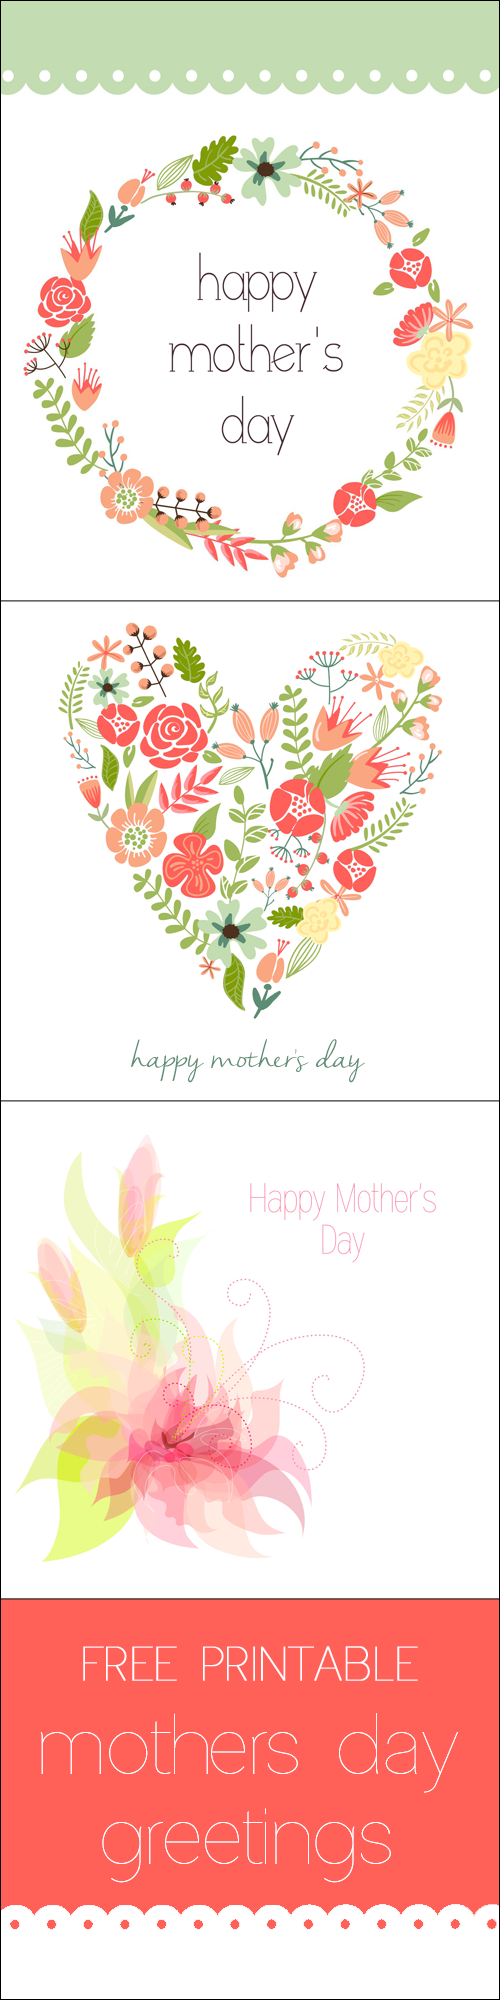 Mothers Day Cards: Free Printable Greetings for Your Mom